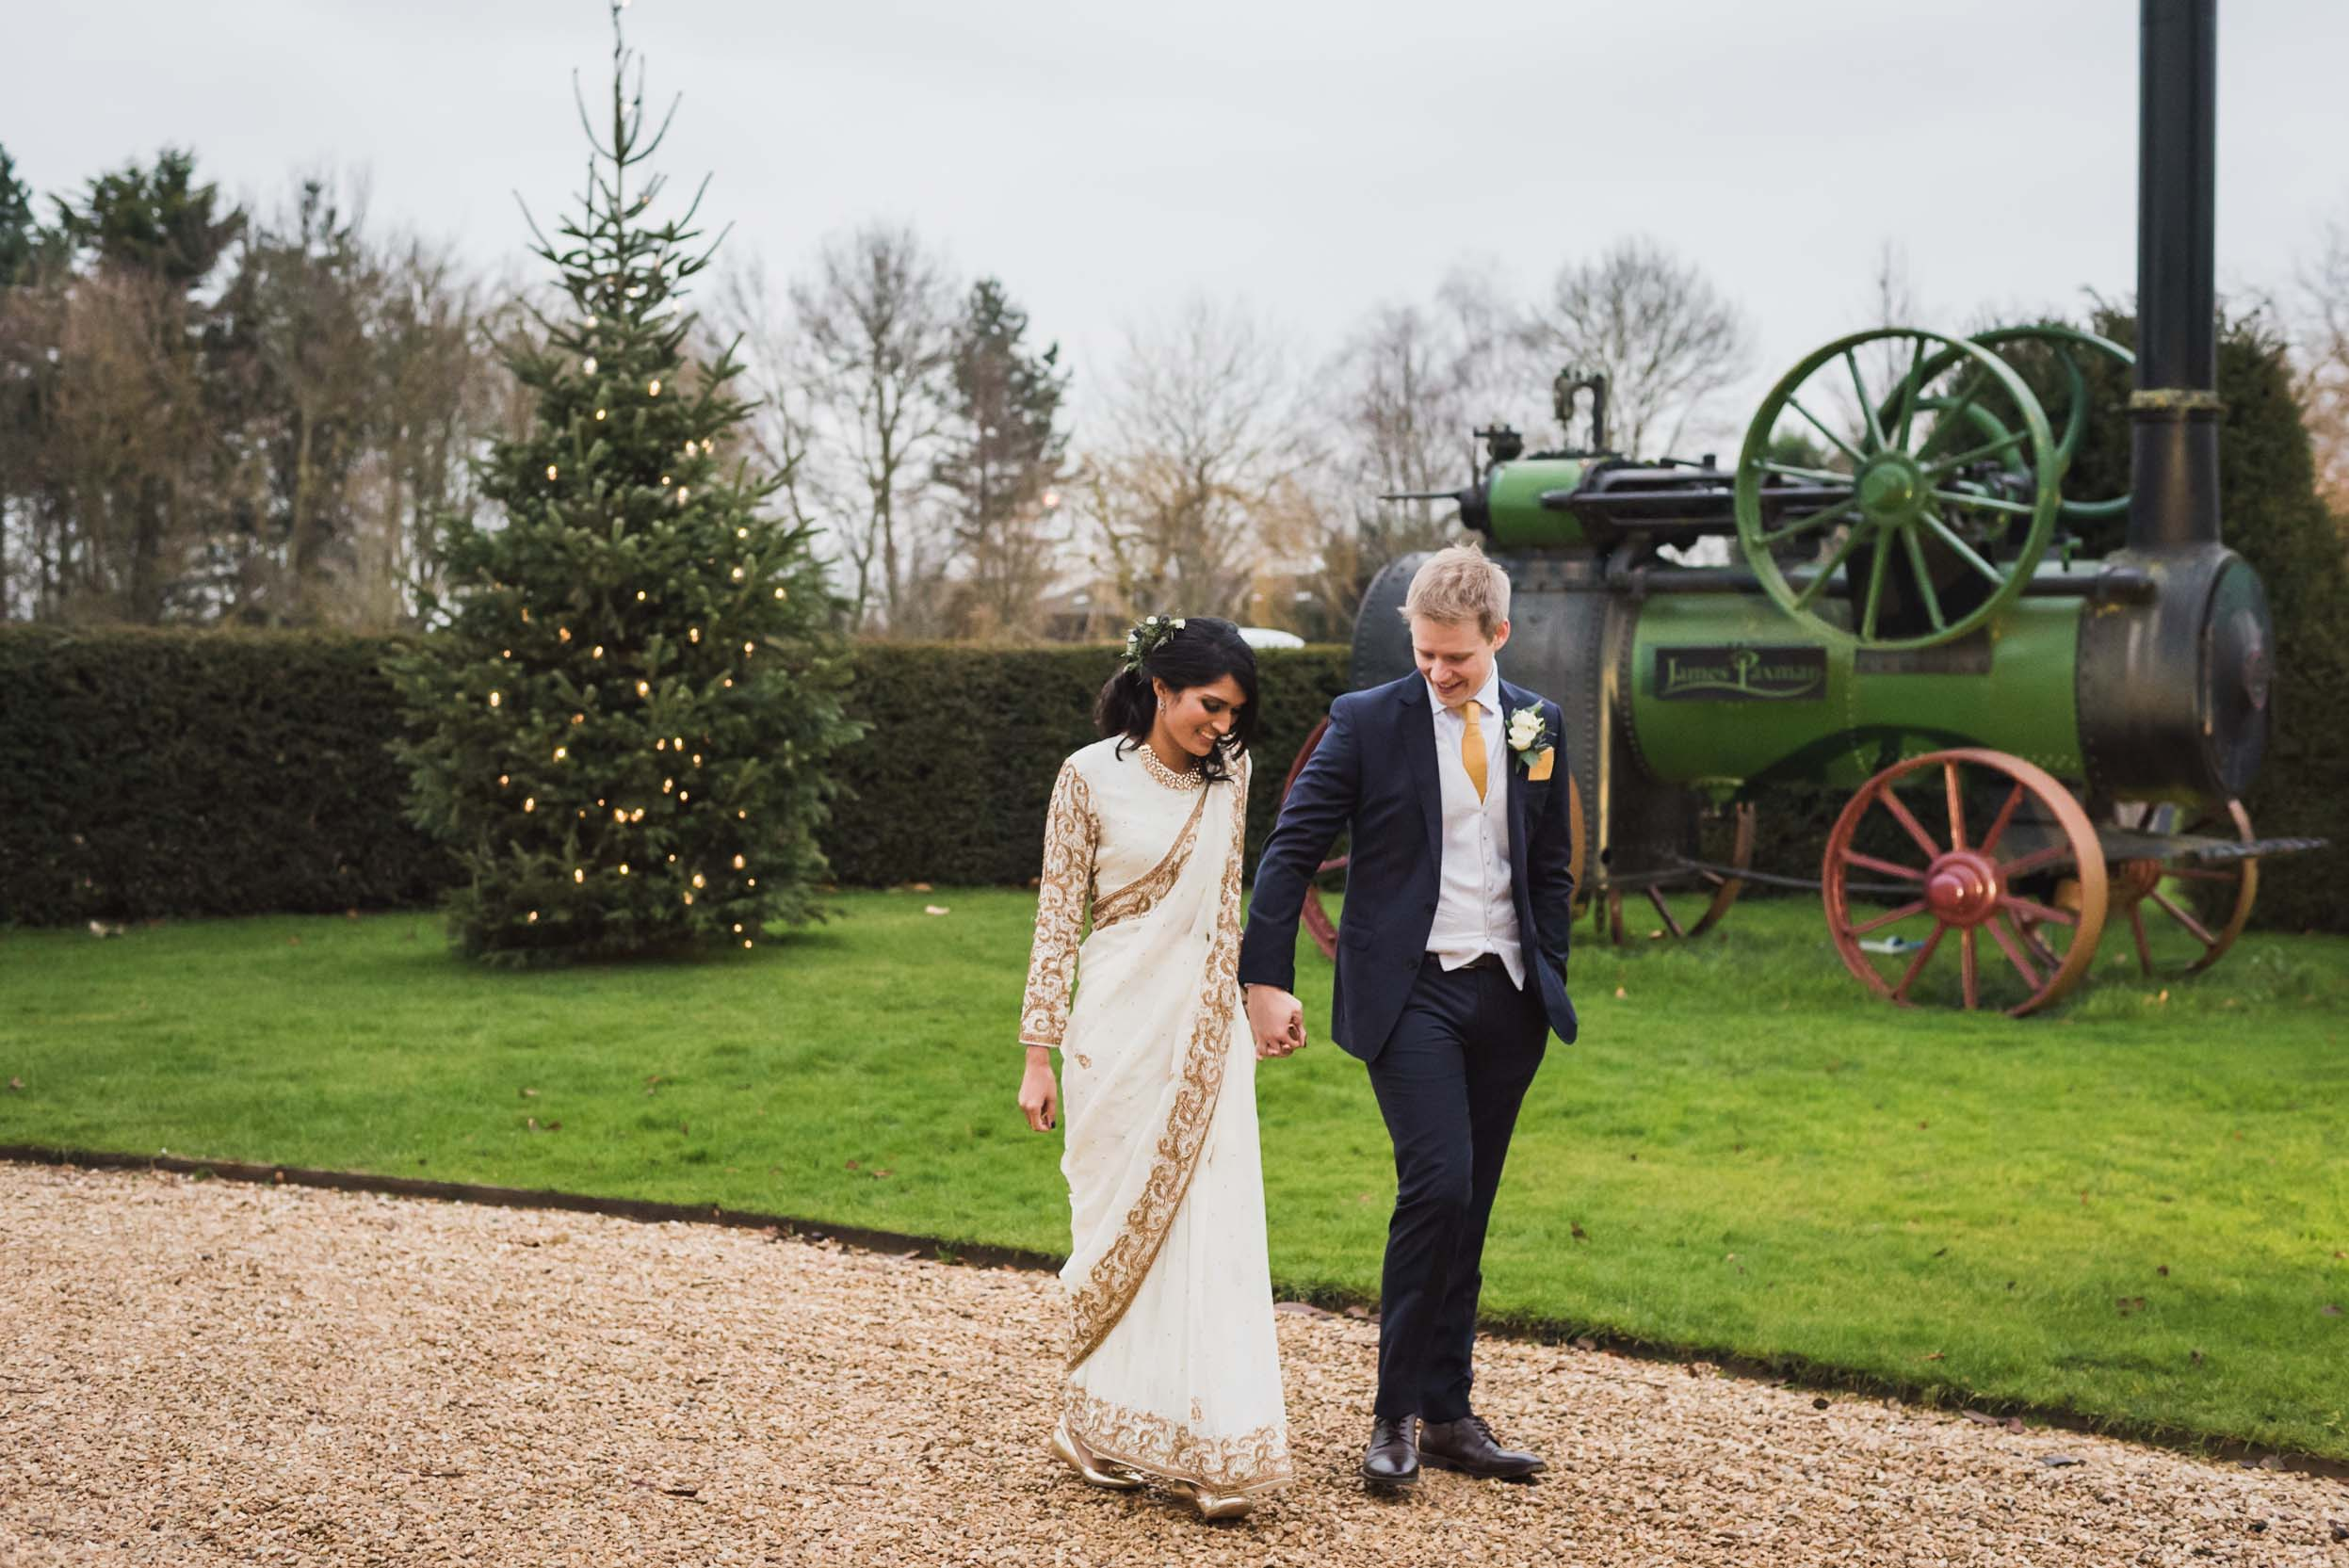 Carine Bea photography, Multicultural wedding, couple portraits